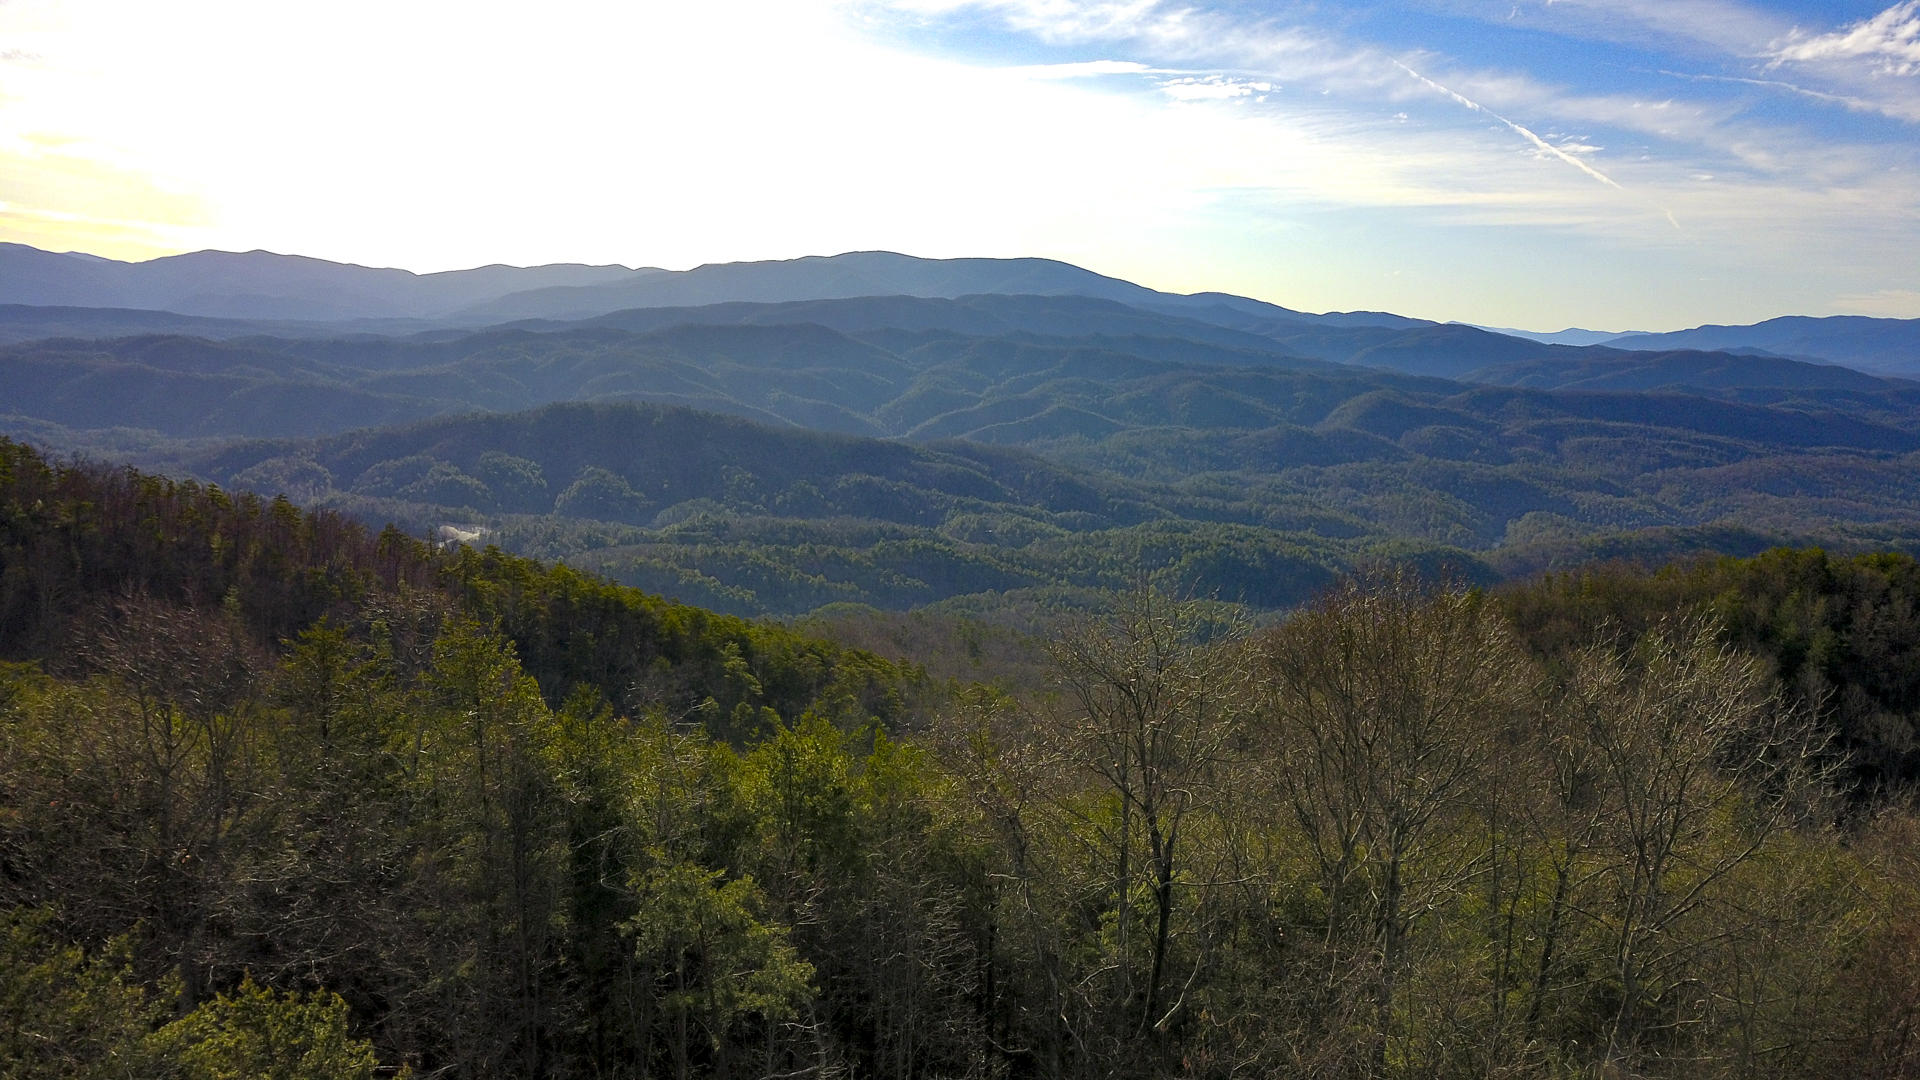 Lot 24, Chilhowee Mountain